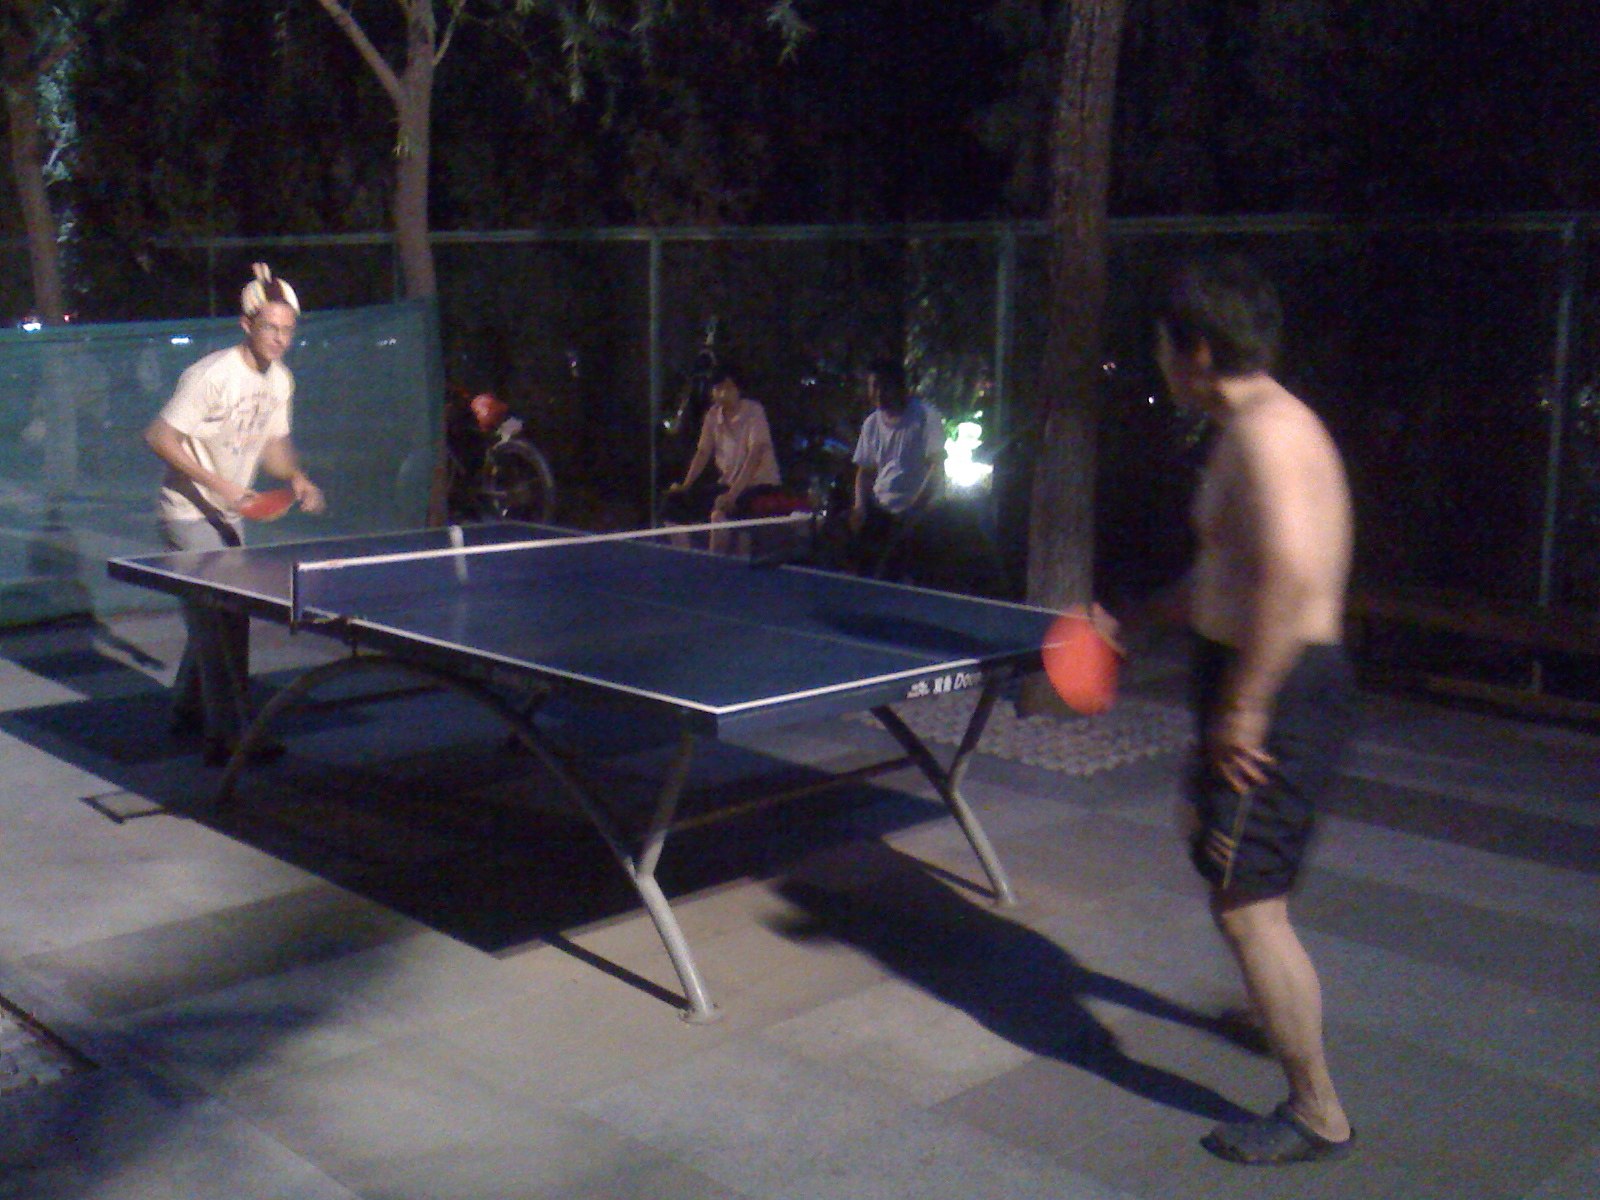 Marks takes on nitetime outdoor Pong with random Chinese guy.